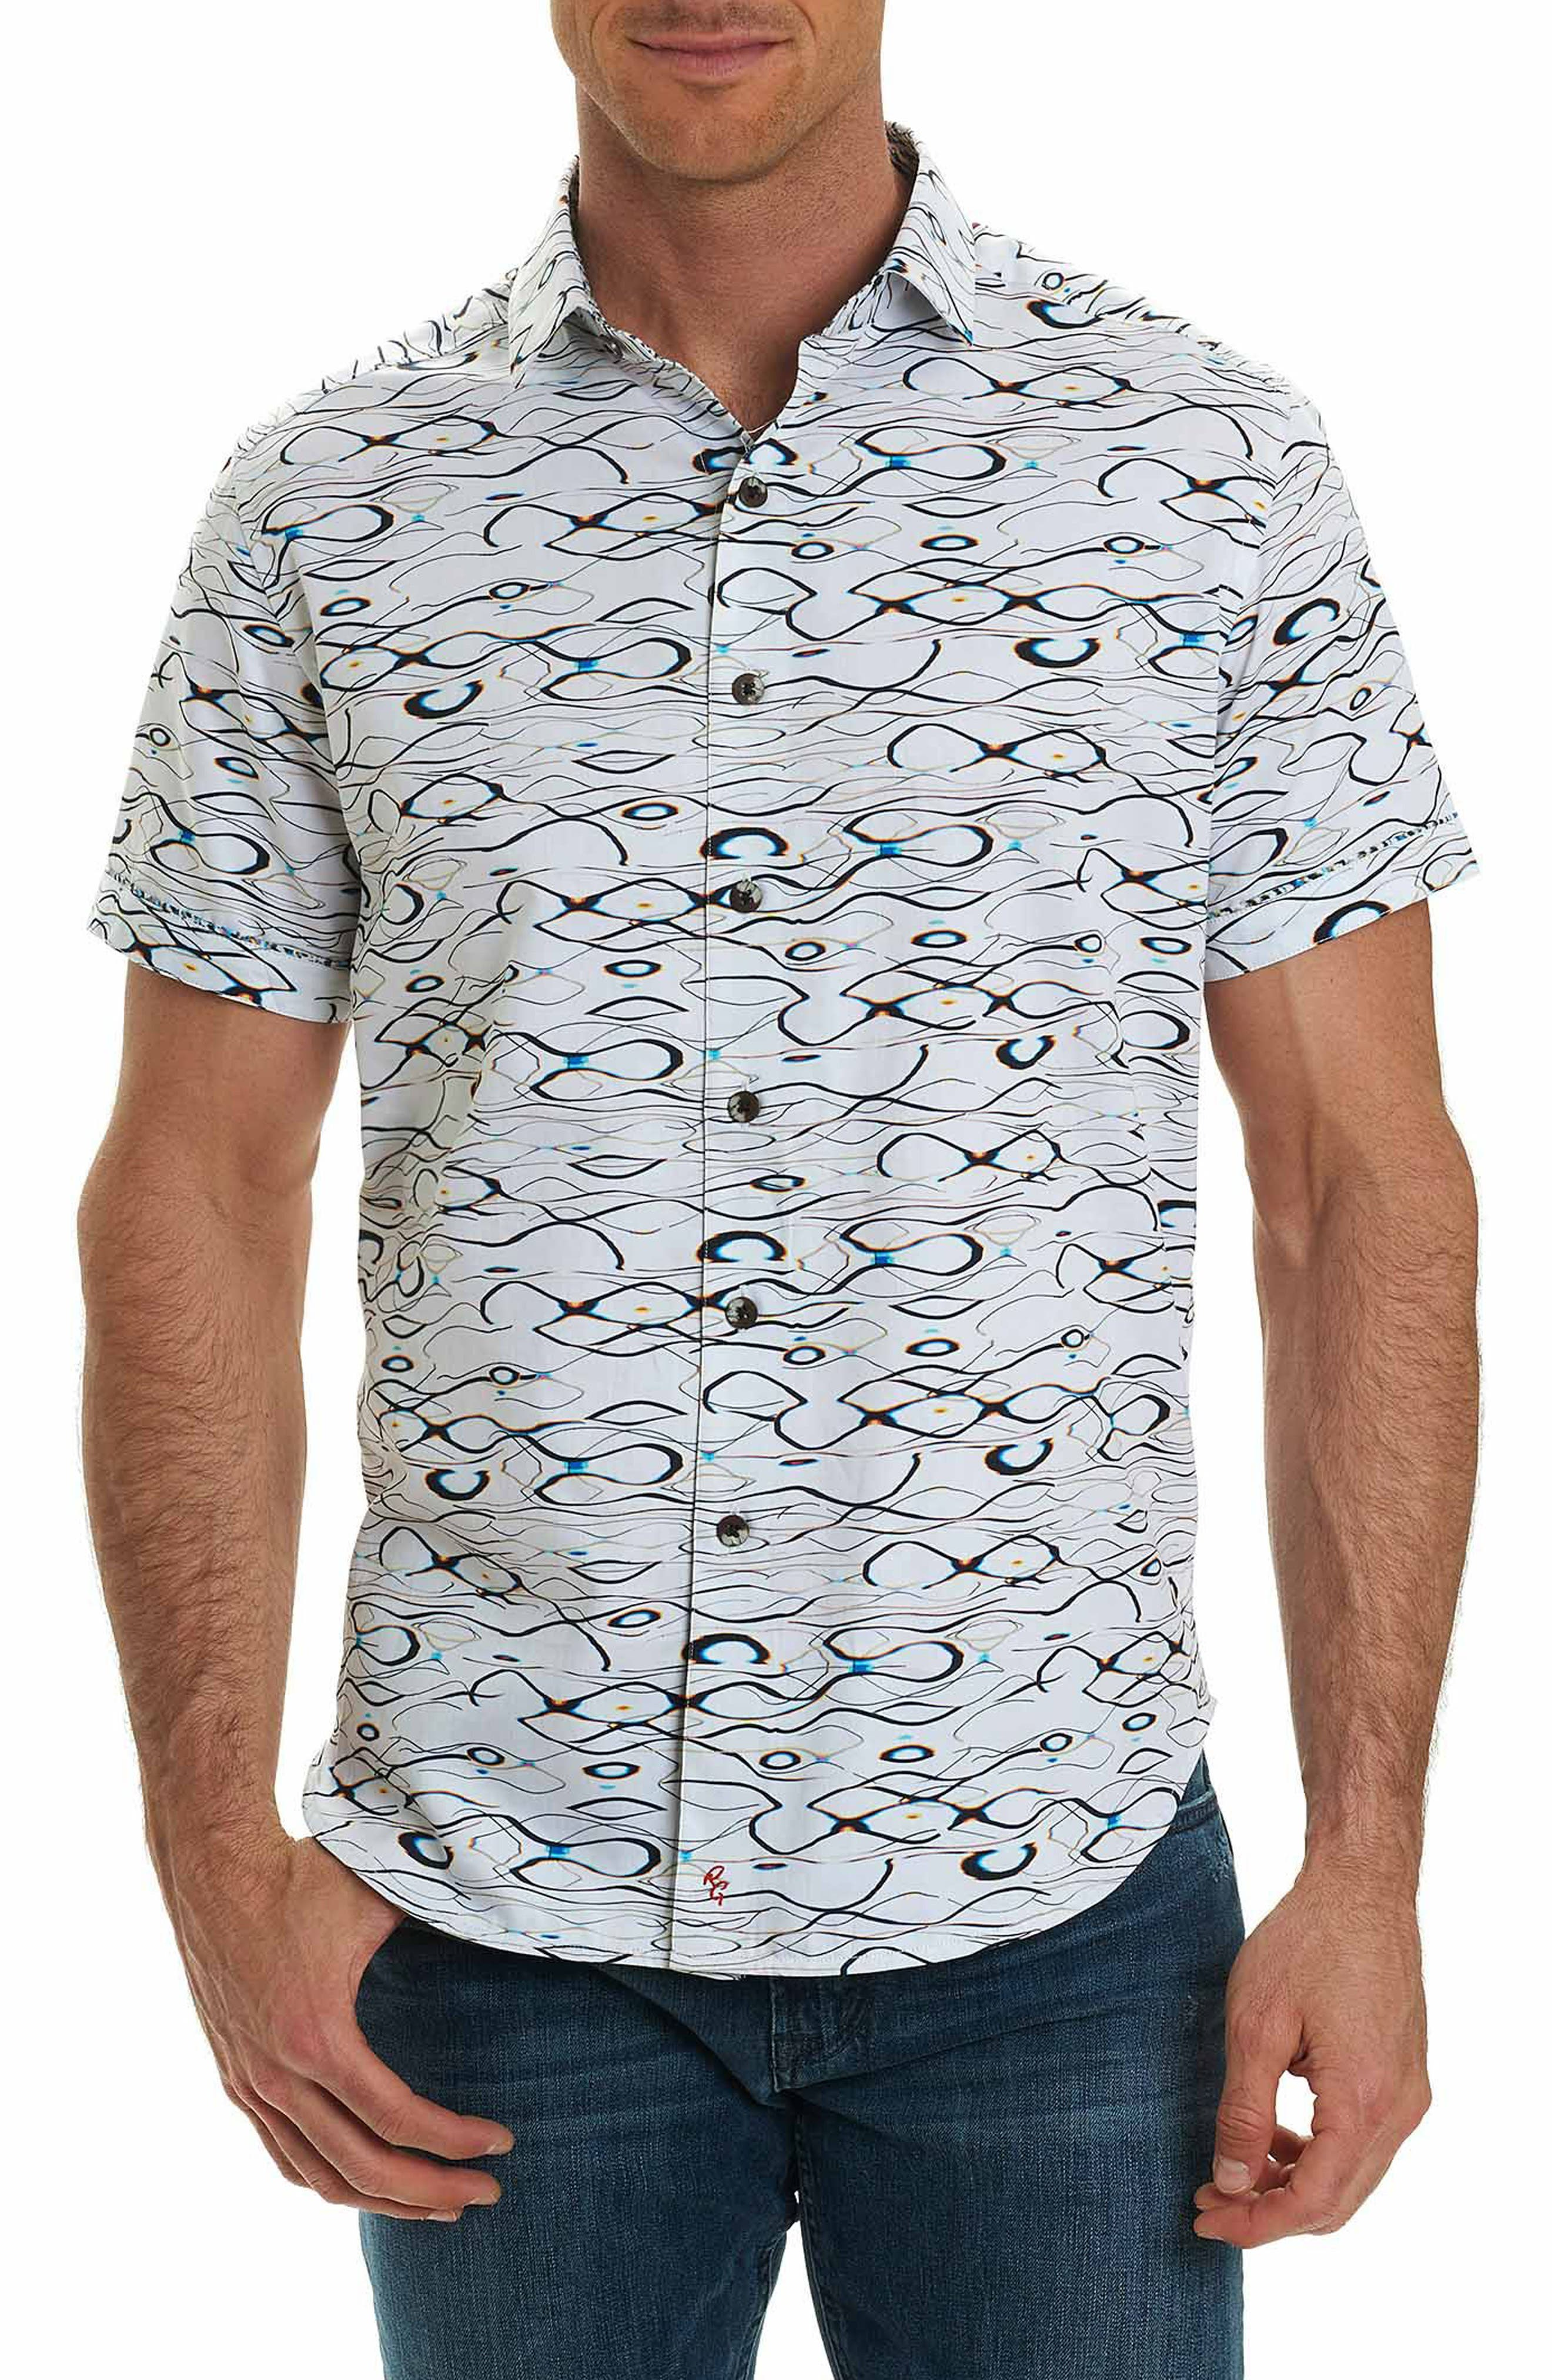 Illusions Sport Shirt,                         Main,                         color, 100